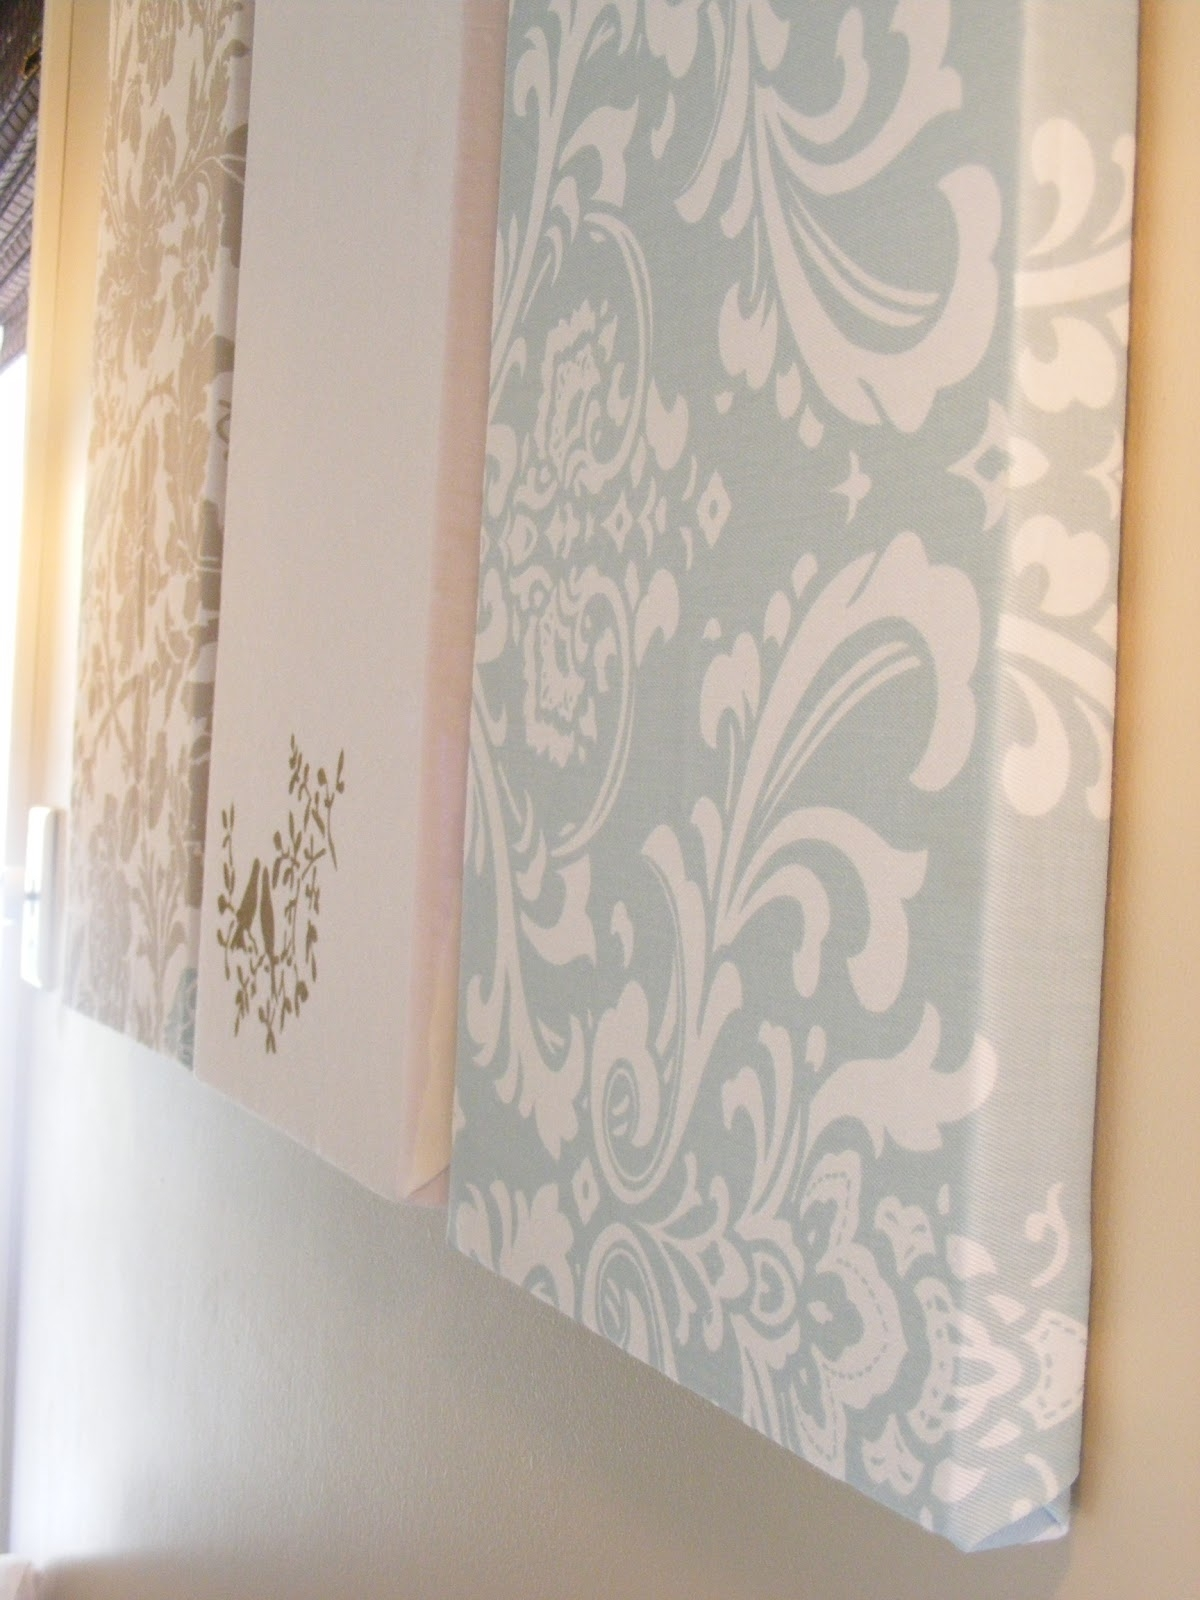 Widely Used Styrofoam Fabric Wall Art Intended For The Complete Guide To Imperfect Homemaking: Simple, Thrifty Diy Art (View 4 of 15)